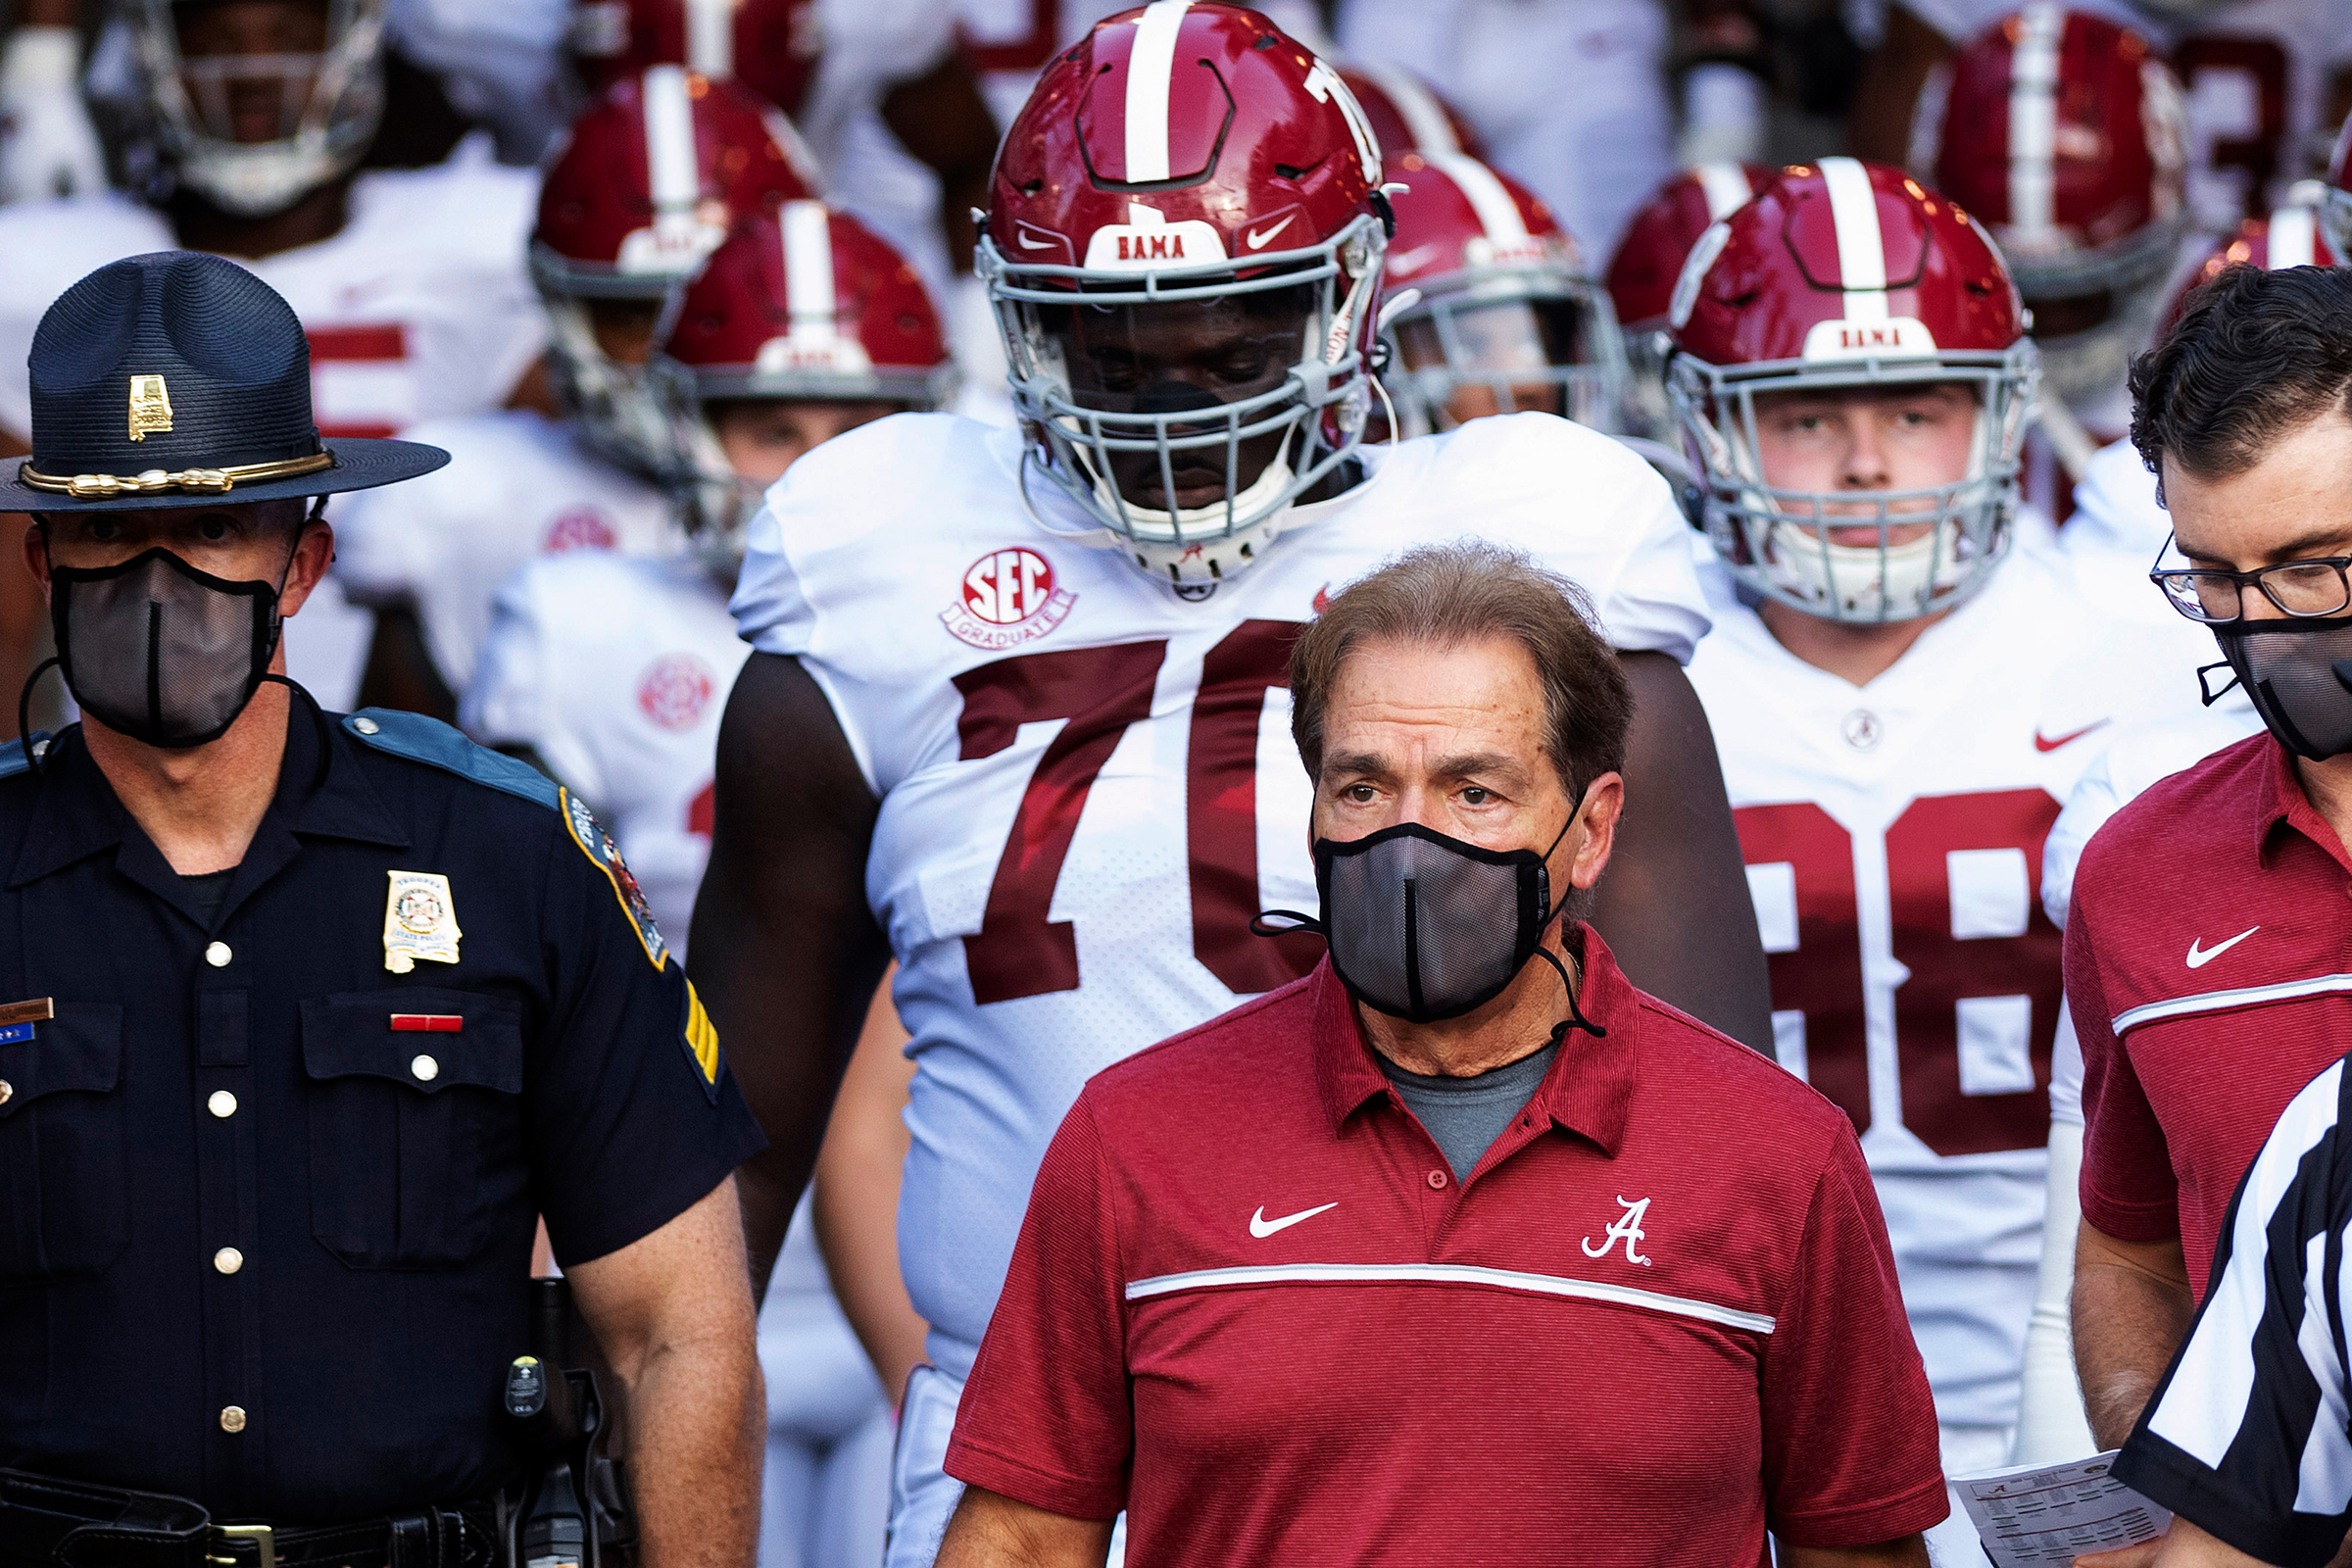 Alabama coach Nick Saban leads his team to the field before an NCAA college football game against Missouri in Columbia, Mo., on Sept. 26, 2020. Saban and athletic director Greg Byrne tested positive for COVID-19, days before the Southeastern Conference's biggest regular-season showdown.